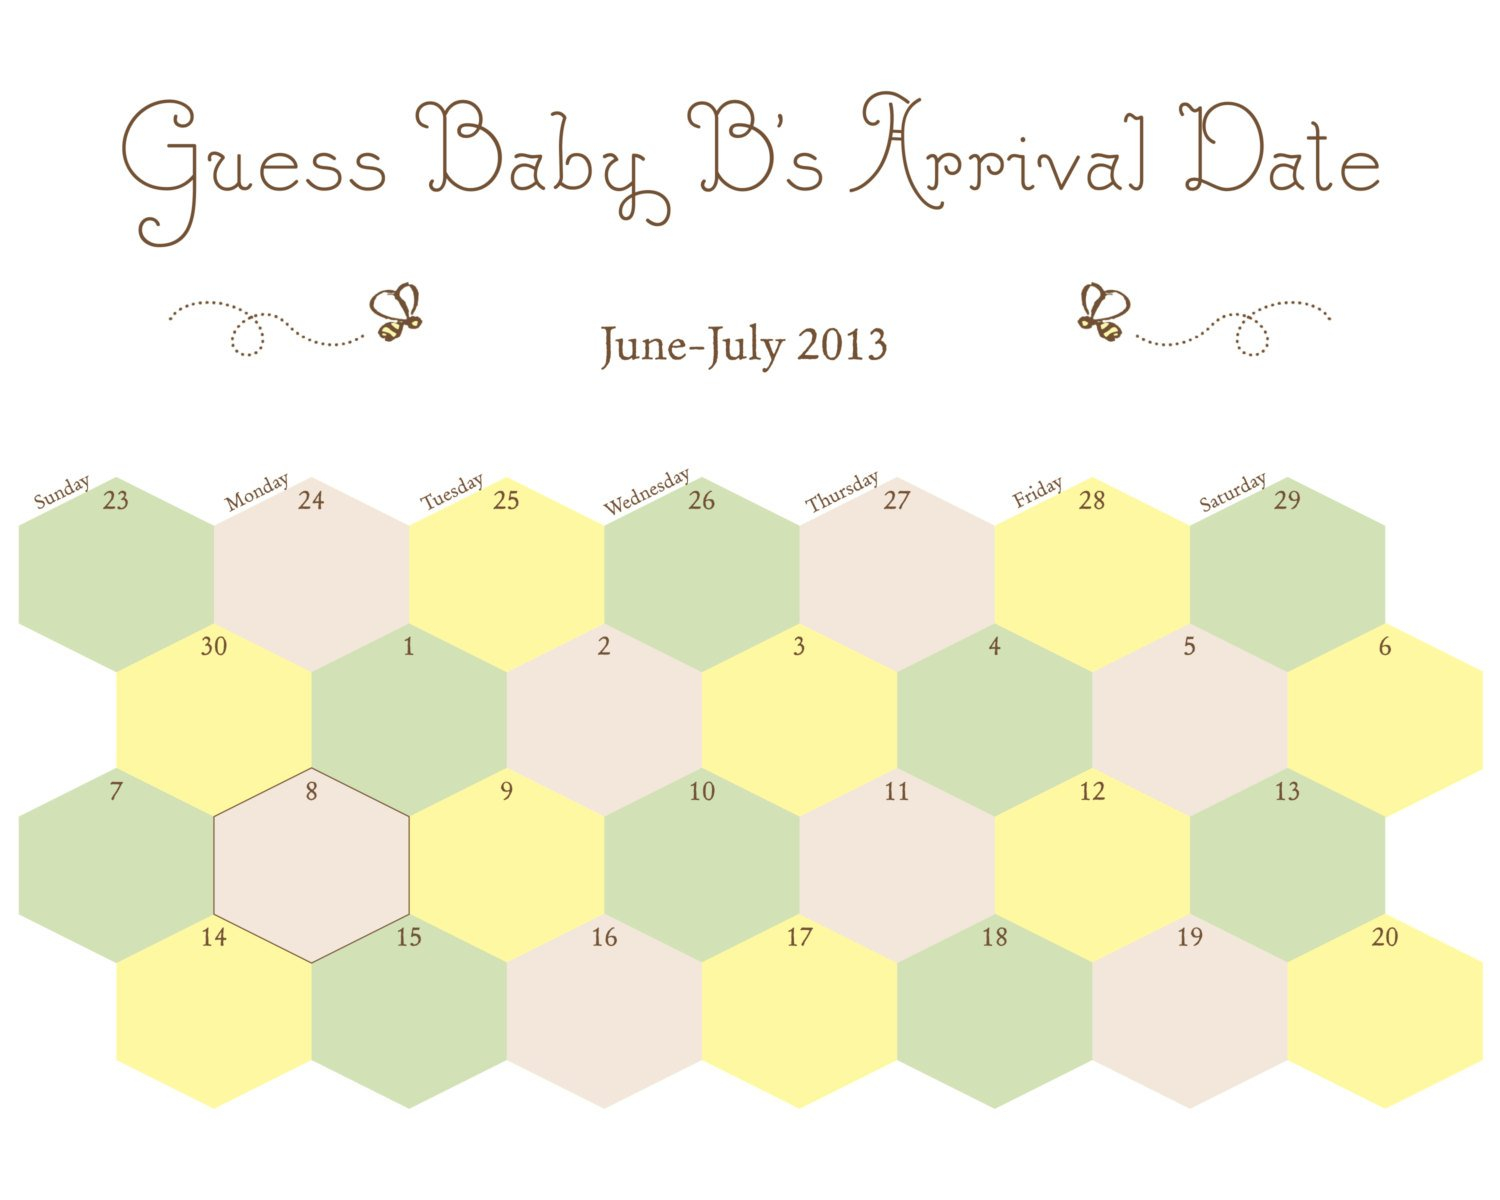 Printable Guess Baby'S Arrival Due Datemaddieandmarry Free Printable Baby Guessing Calendar